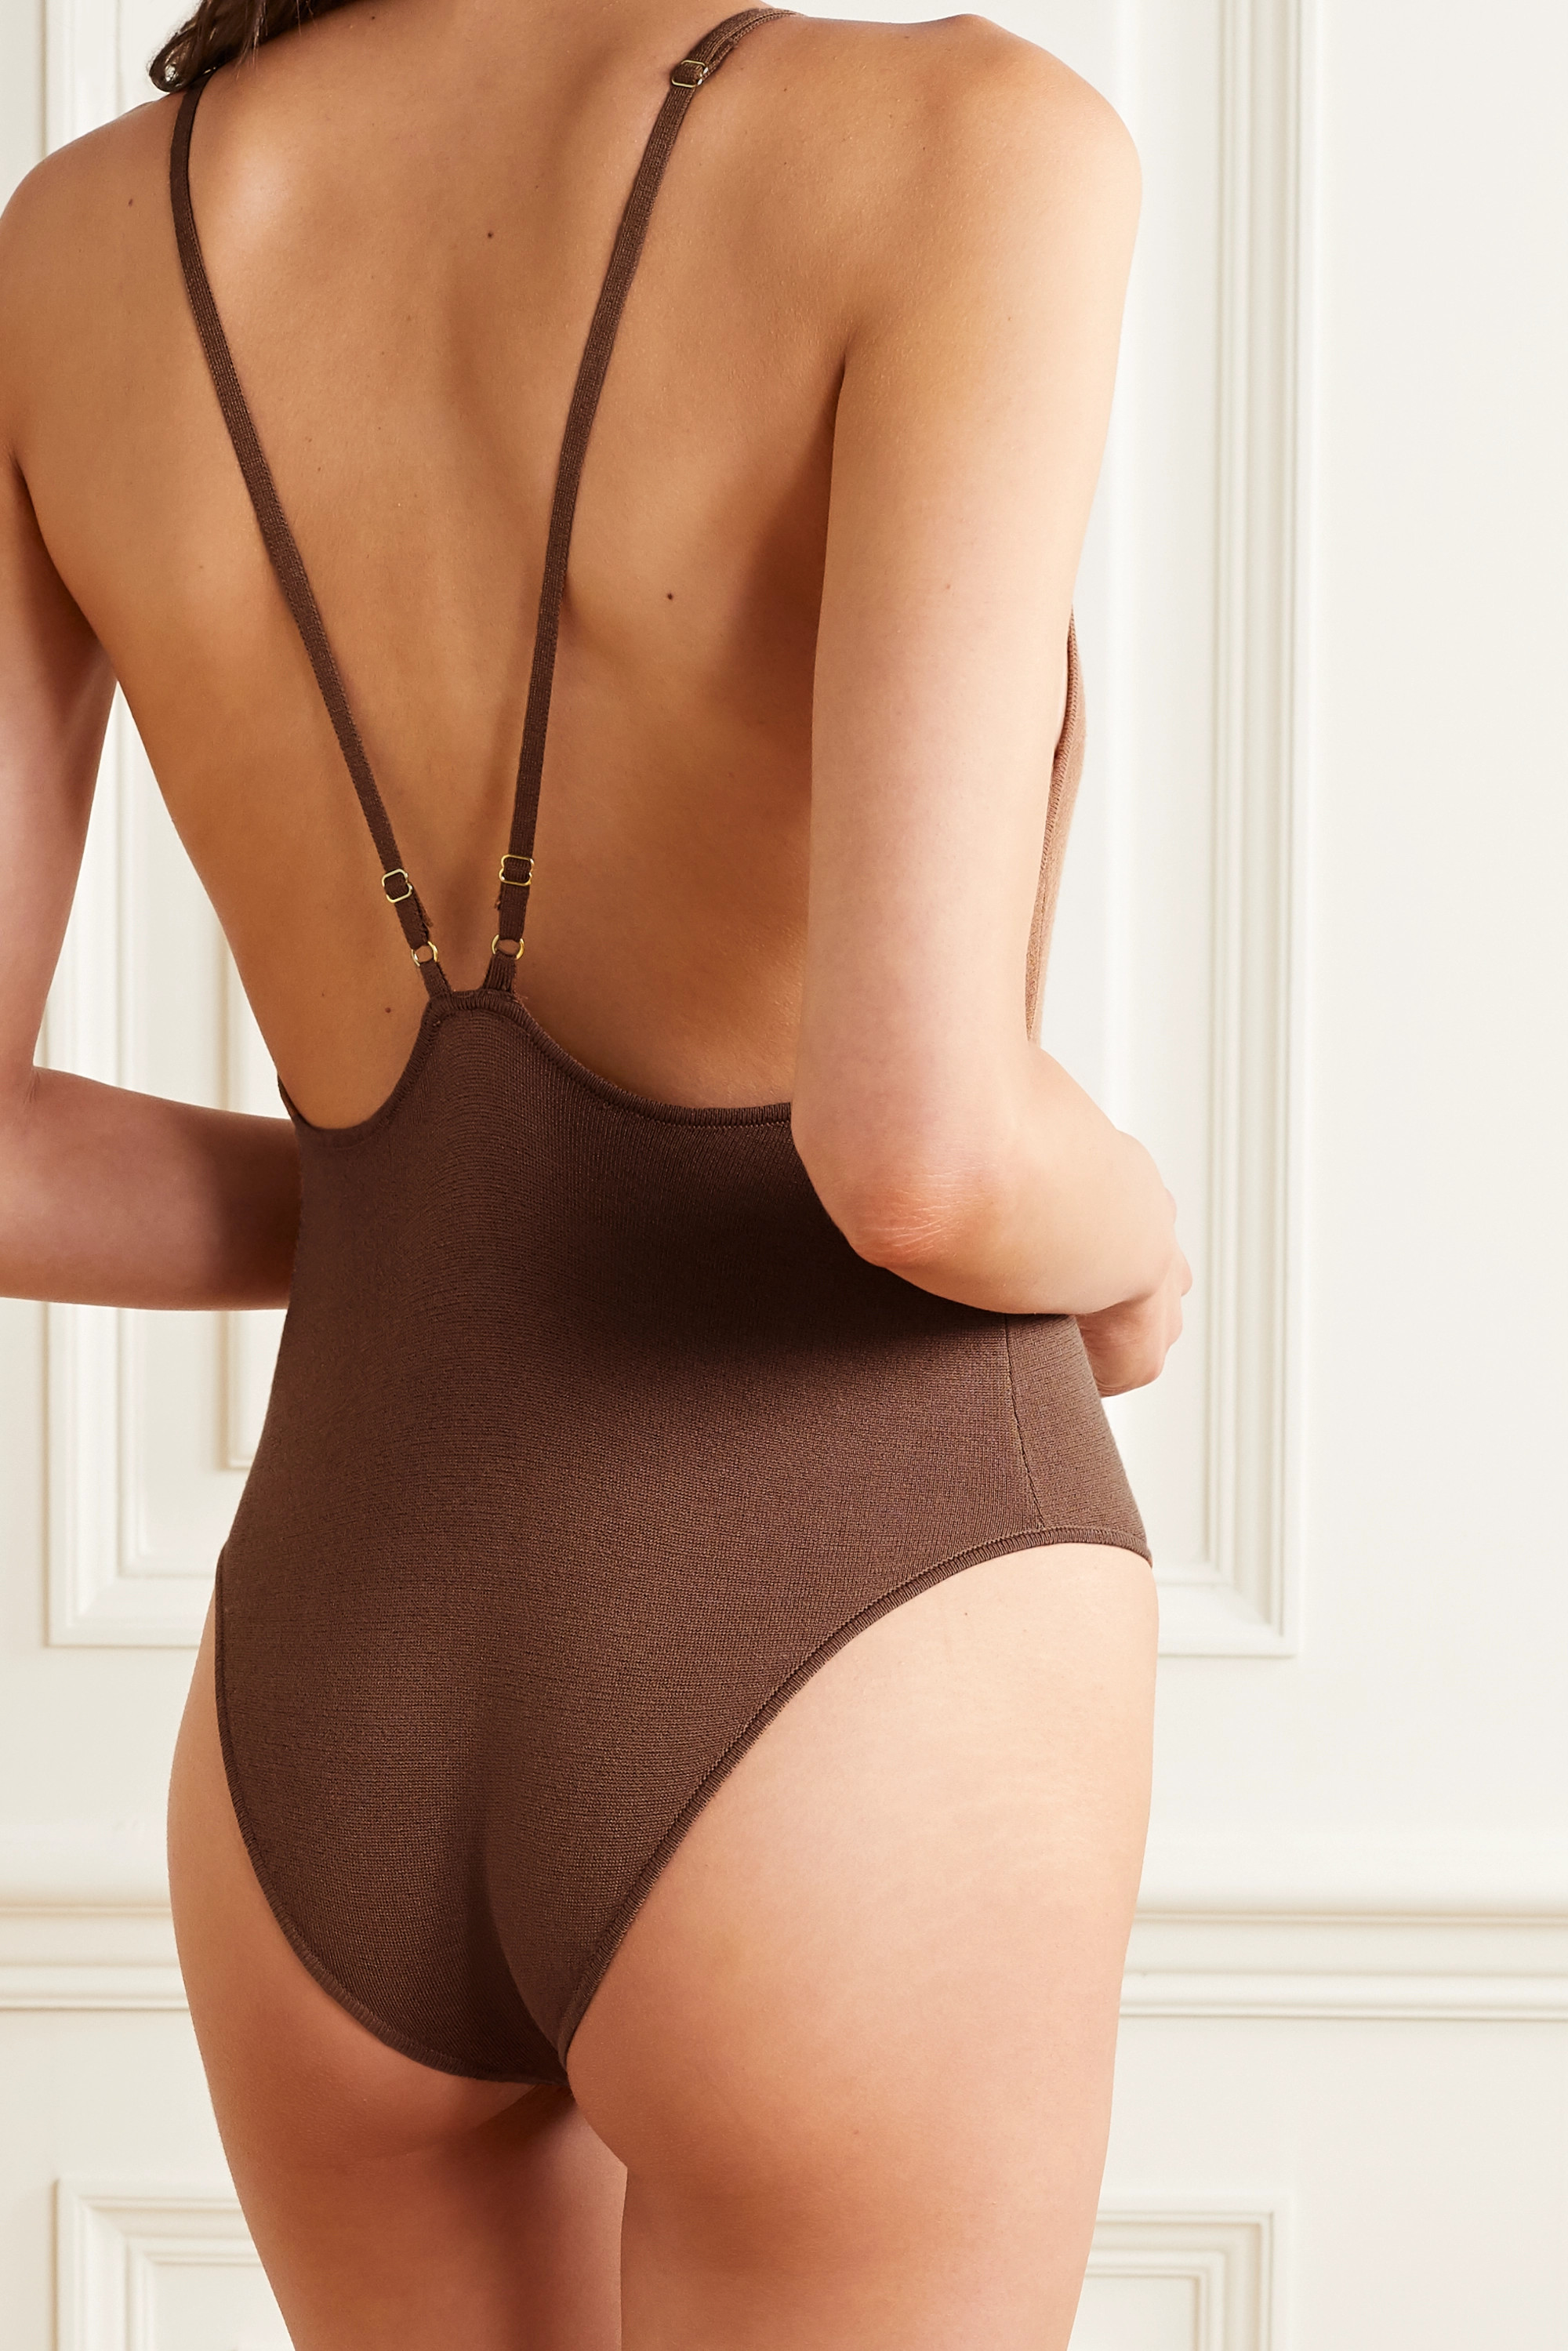 Dodo Bar Or Liam Tencel bodysuit